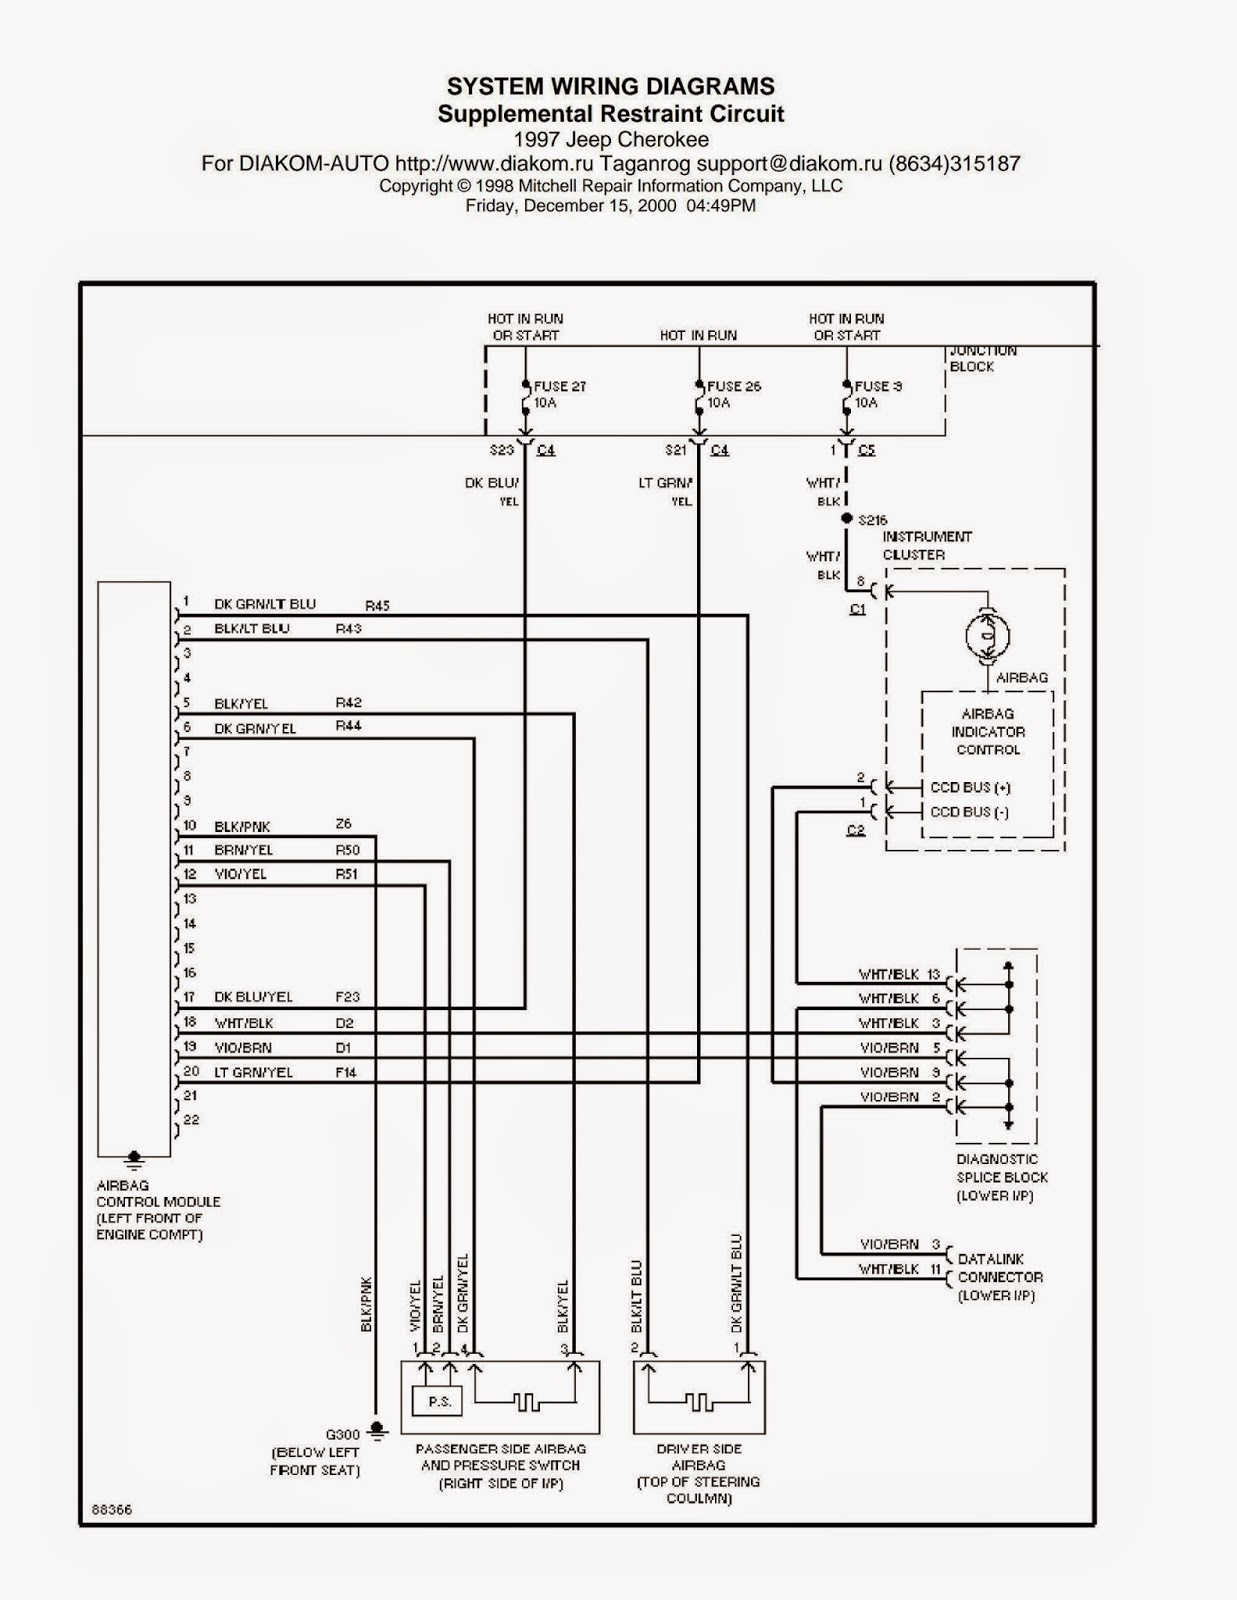 1999 jeep cherokee wiring diagram 2014 jeep cherokee wiring diagram #12